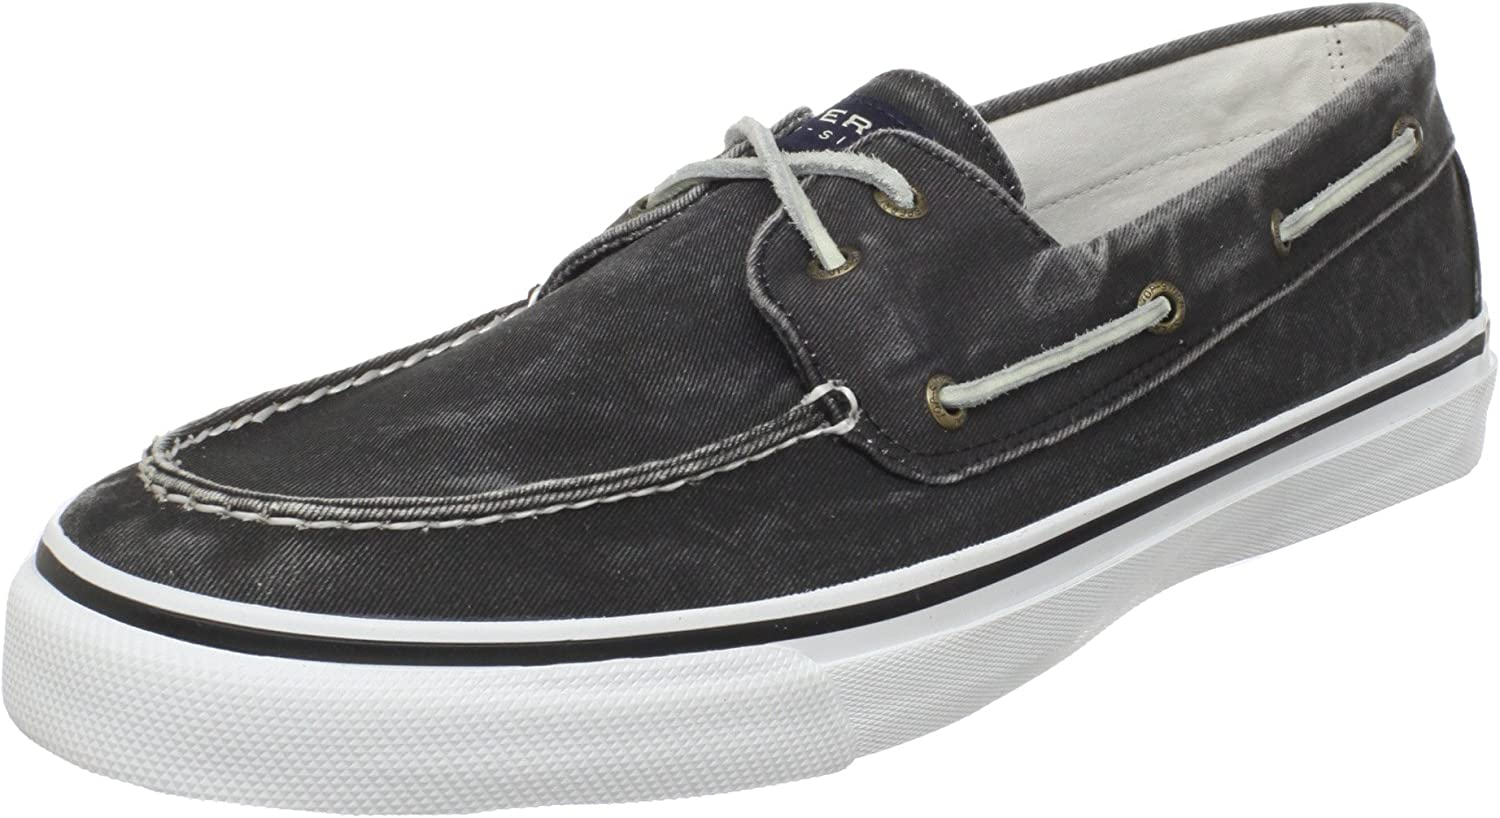 Sperry Top-Sider Men's Bahama 2 Eye Boat shoes